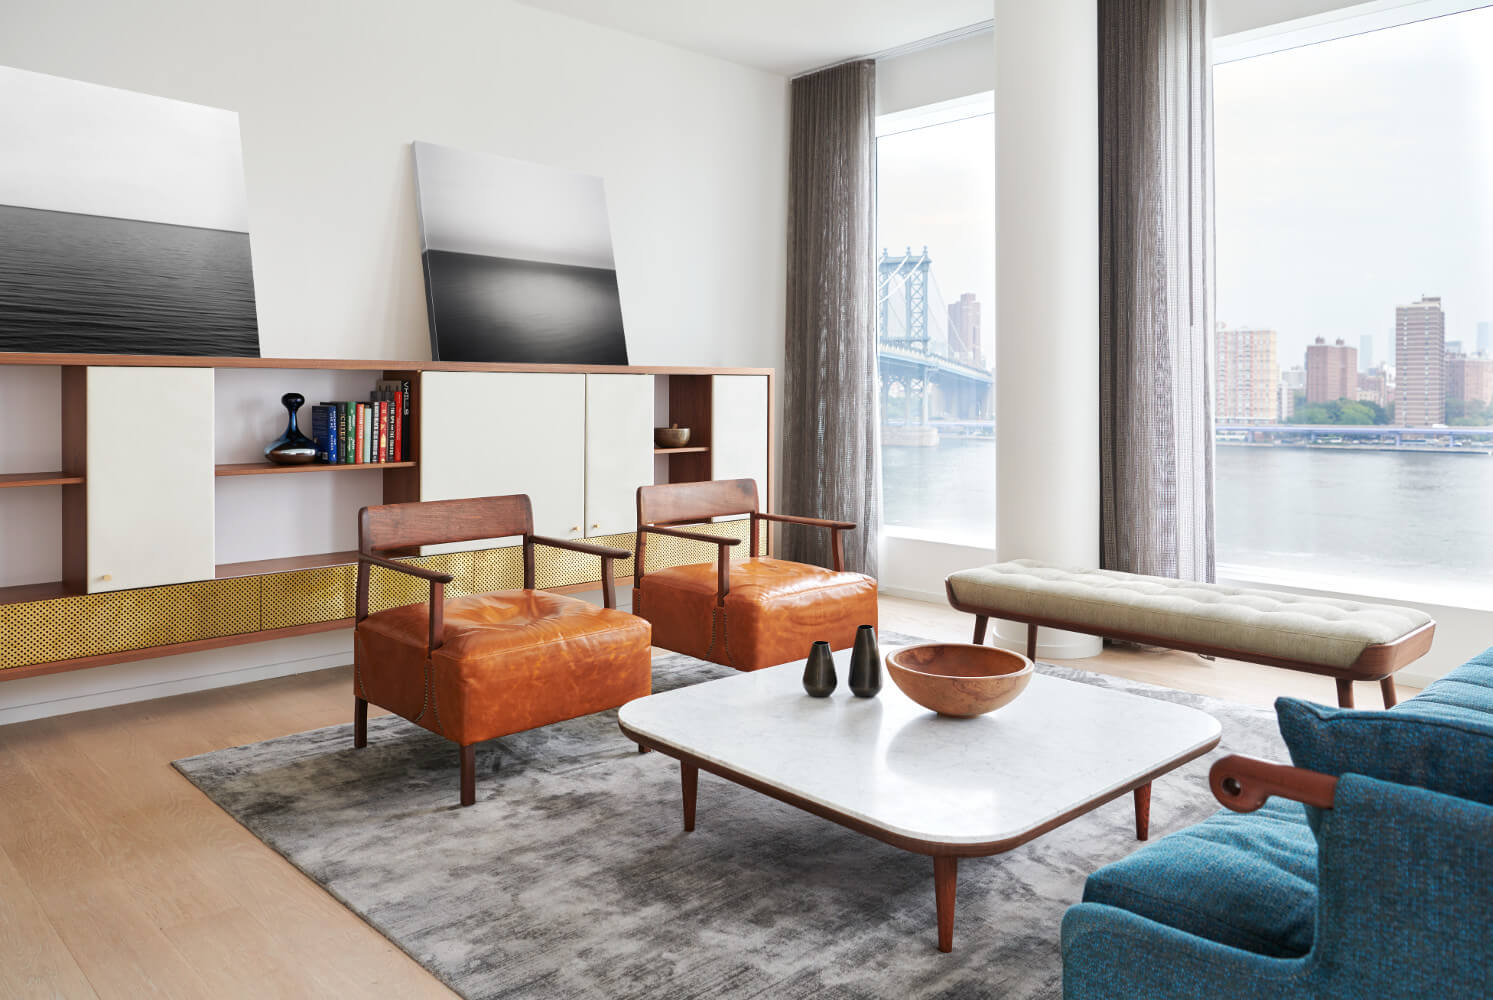 DUMBO apartment's new furnishings match the spectacular views.